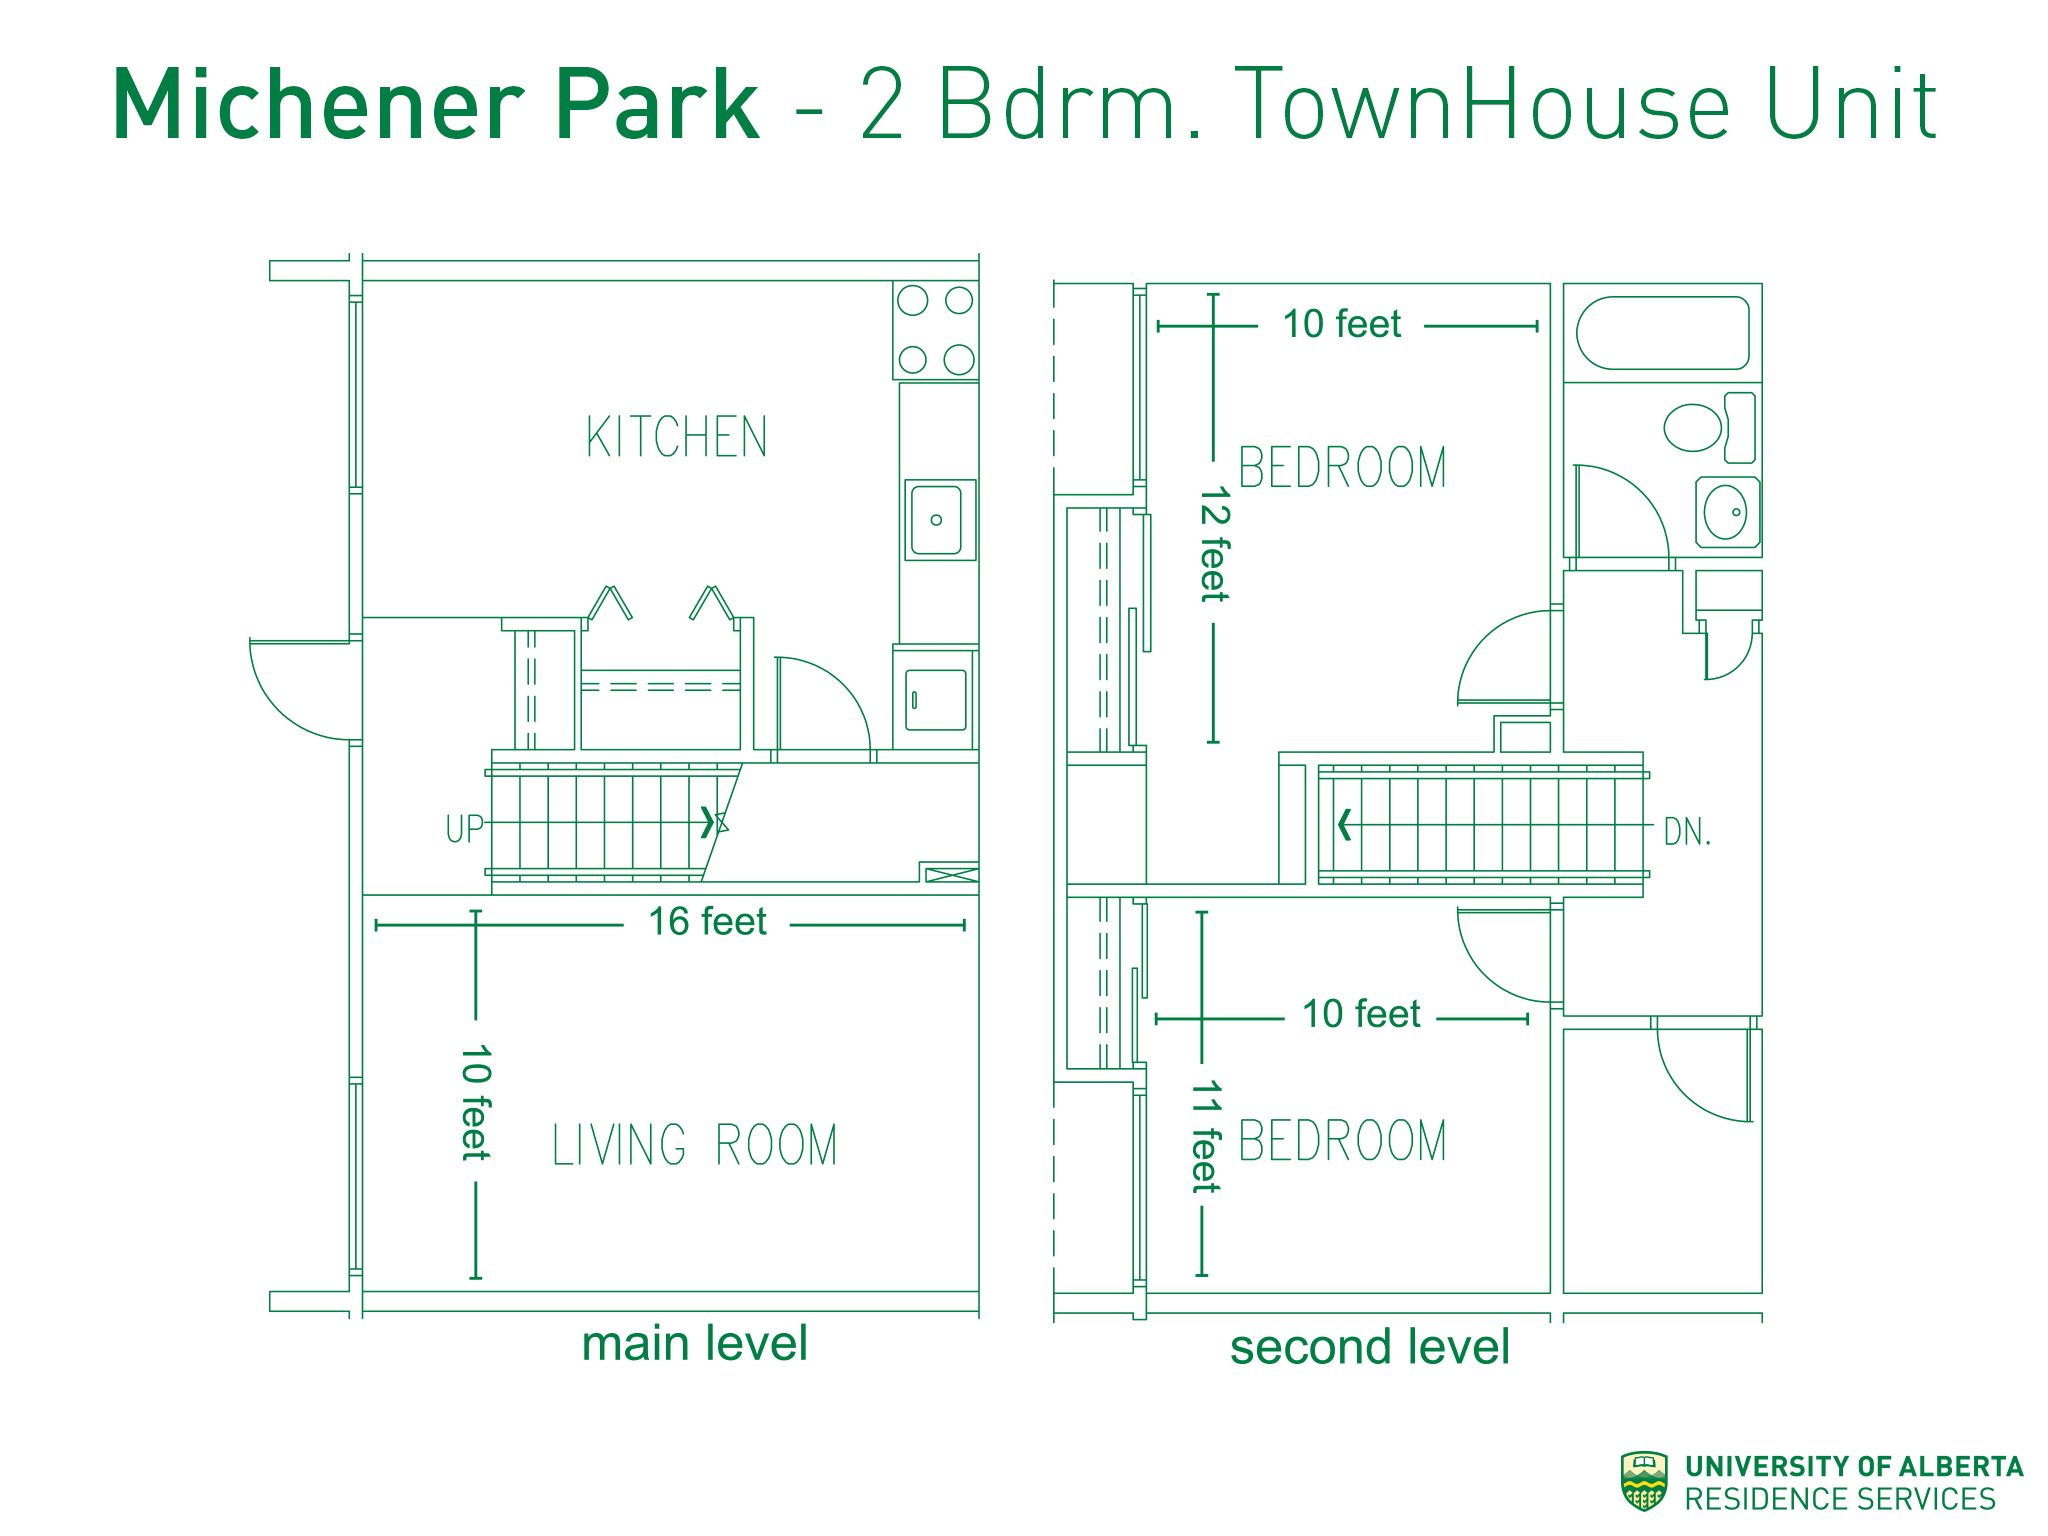 Floorplan with dimensions for twobedroom townhouse units